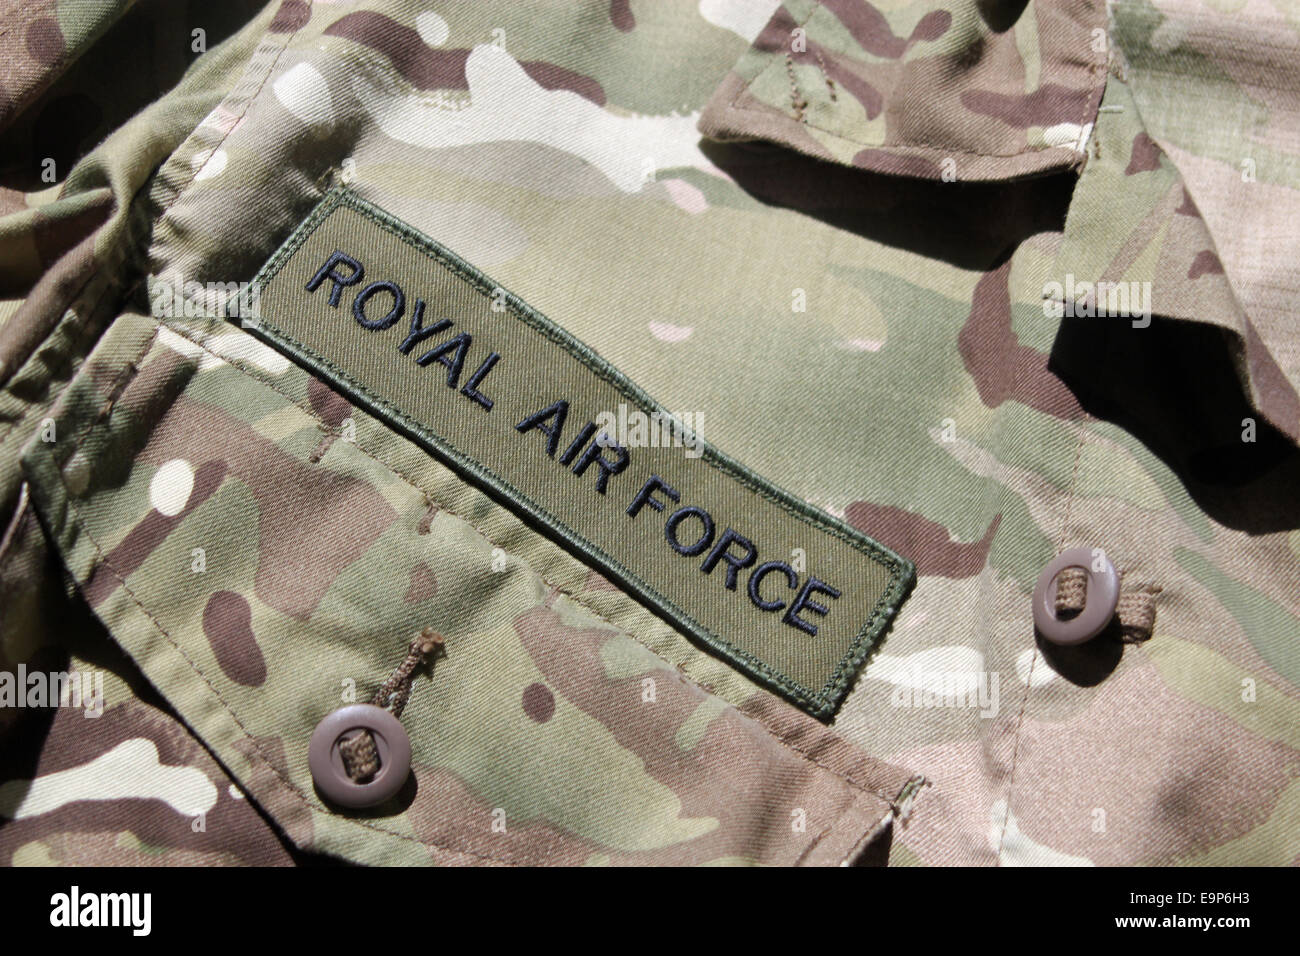 Close-up de uniforme militar de la RAF Imagen De Stock